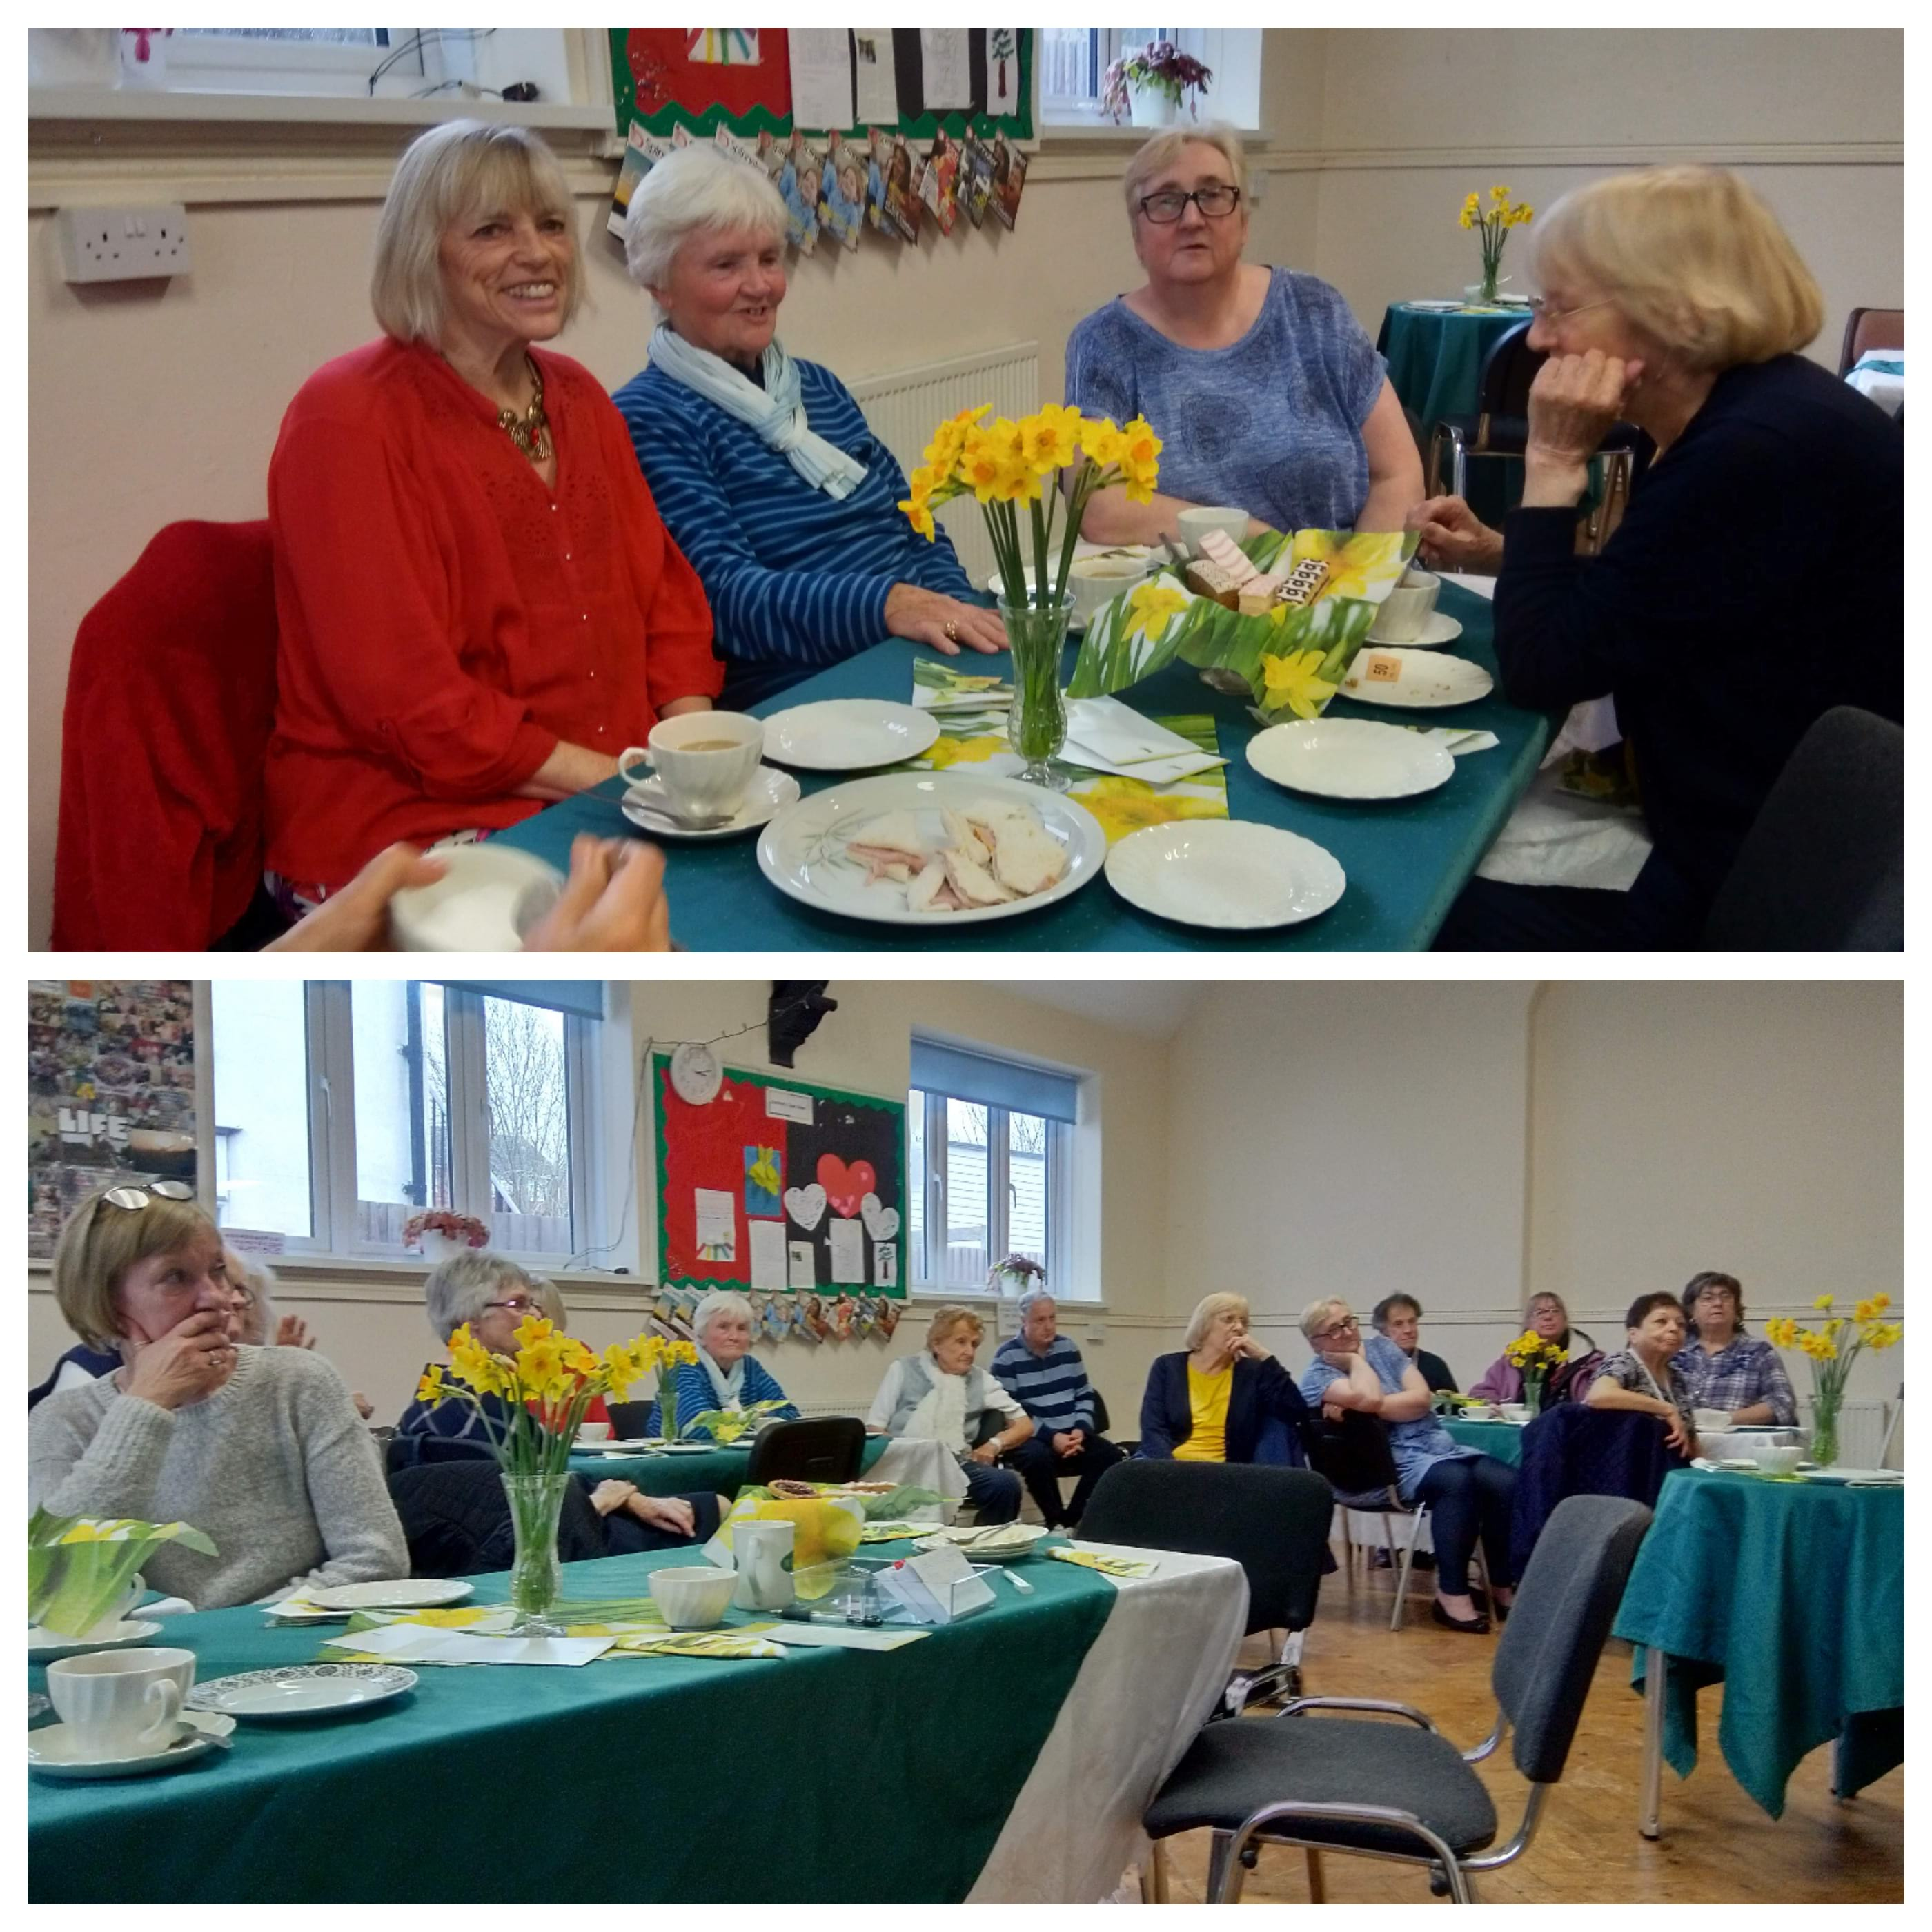 Our tea rooms. Next meeting on 4th March 2020, all welcome for tea cakes and a chat.